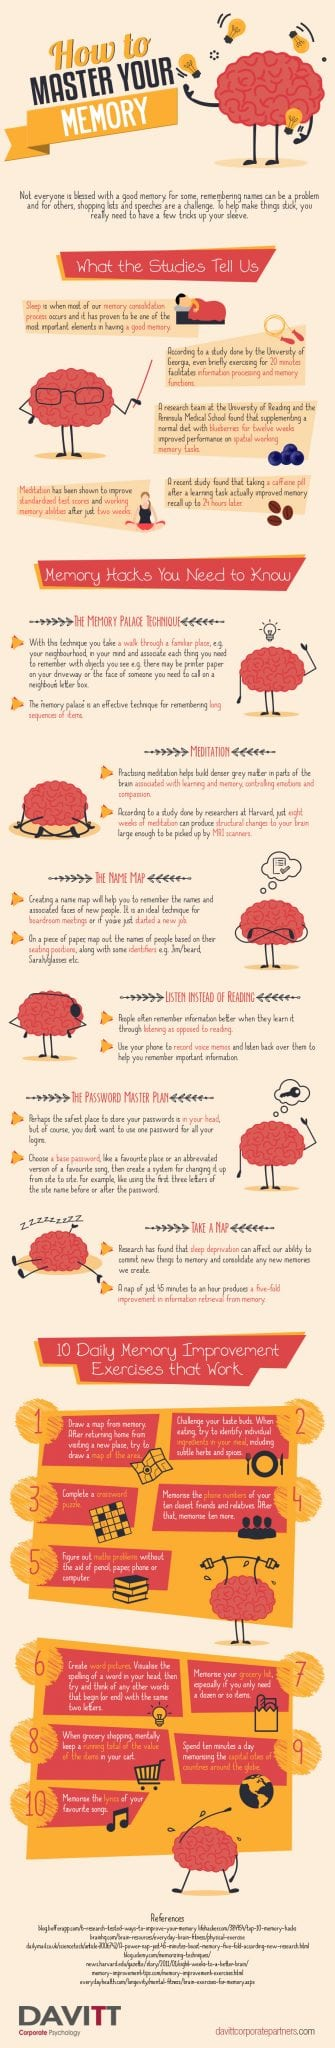 Photo of How to Master Your Memory [INFOGRAPHIC]